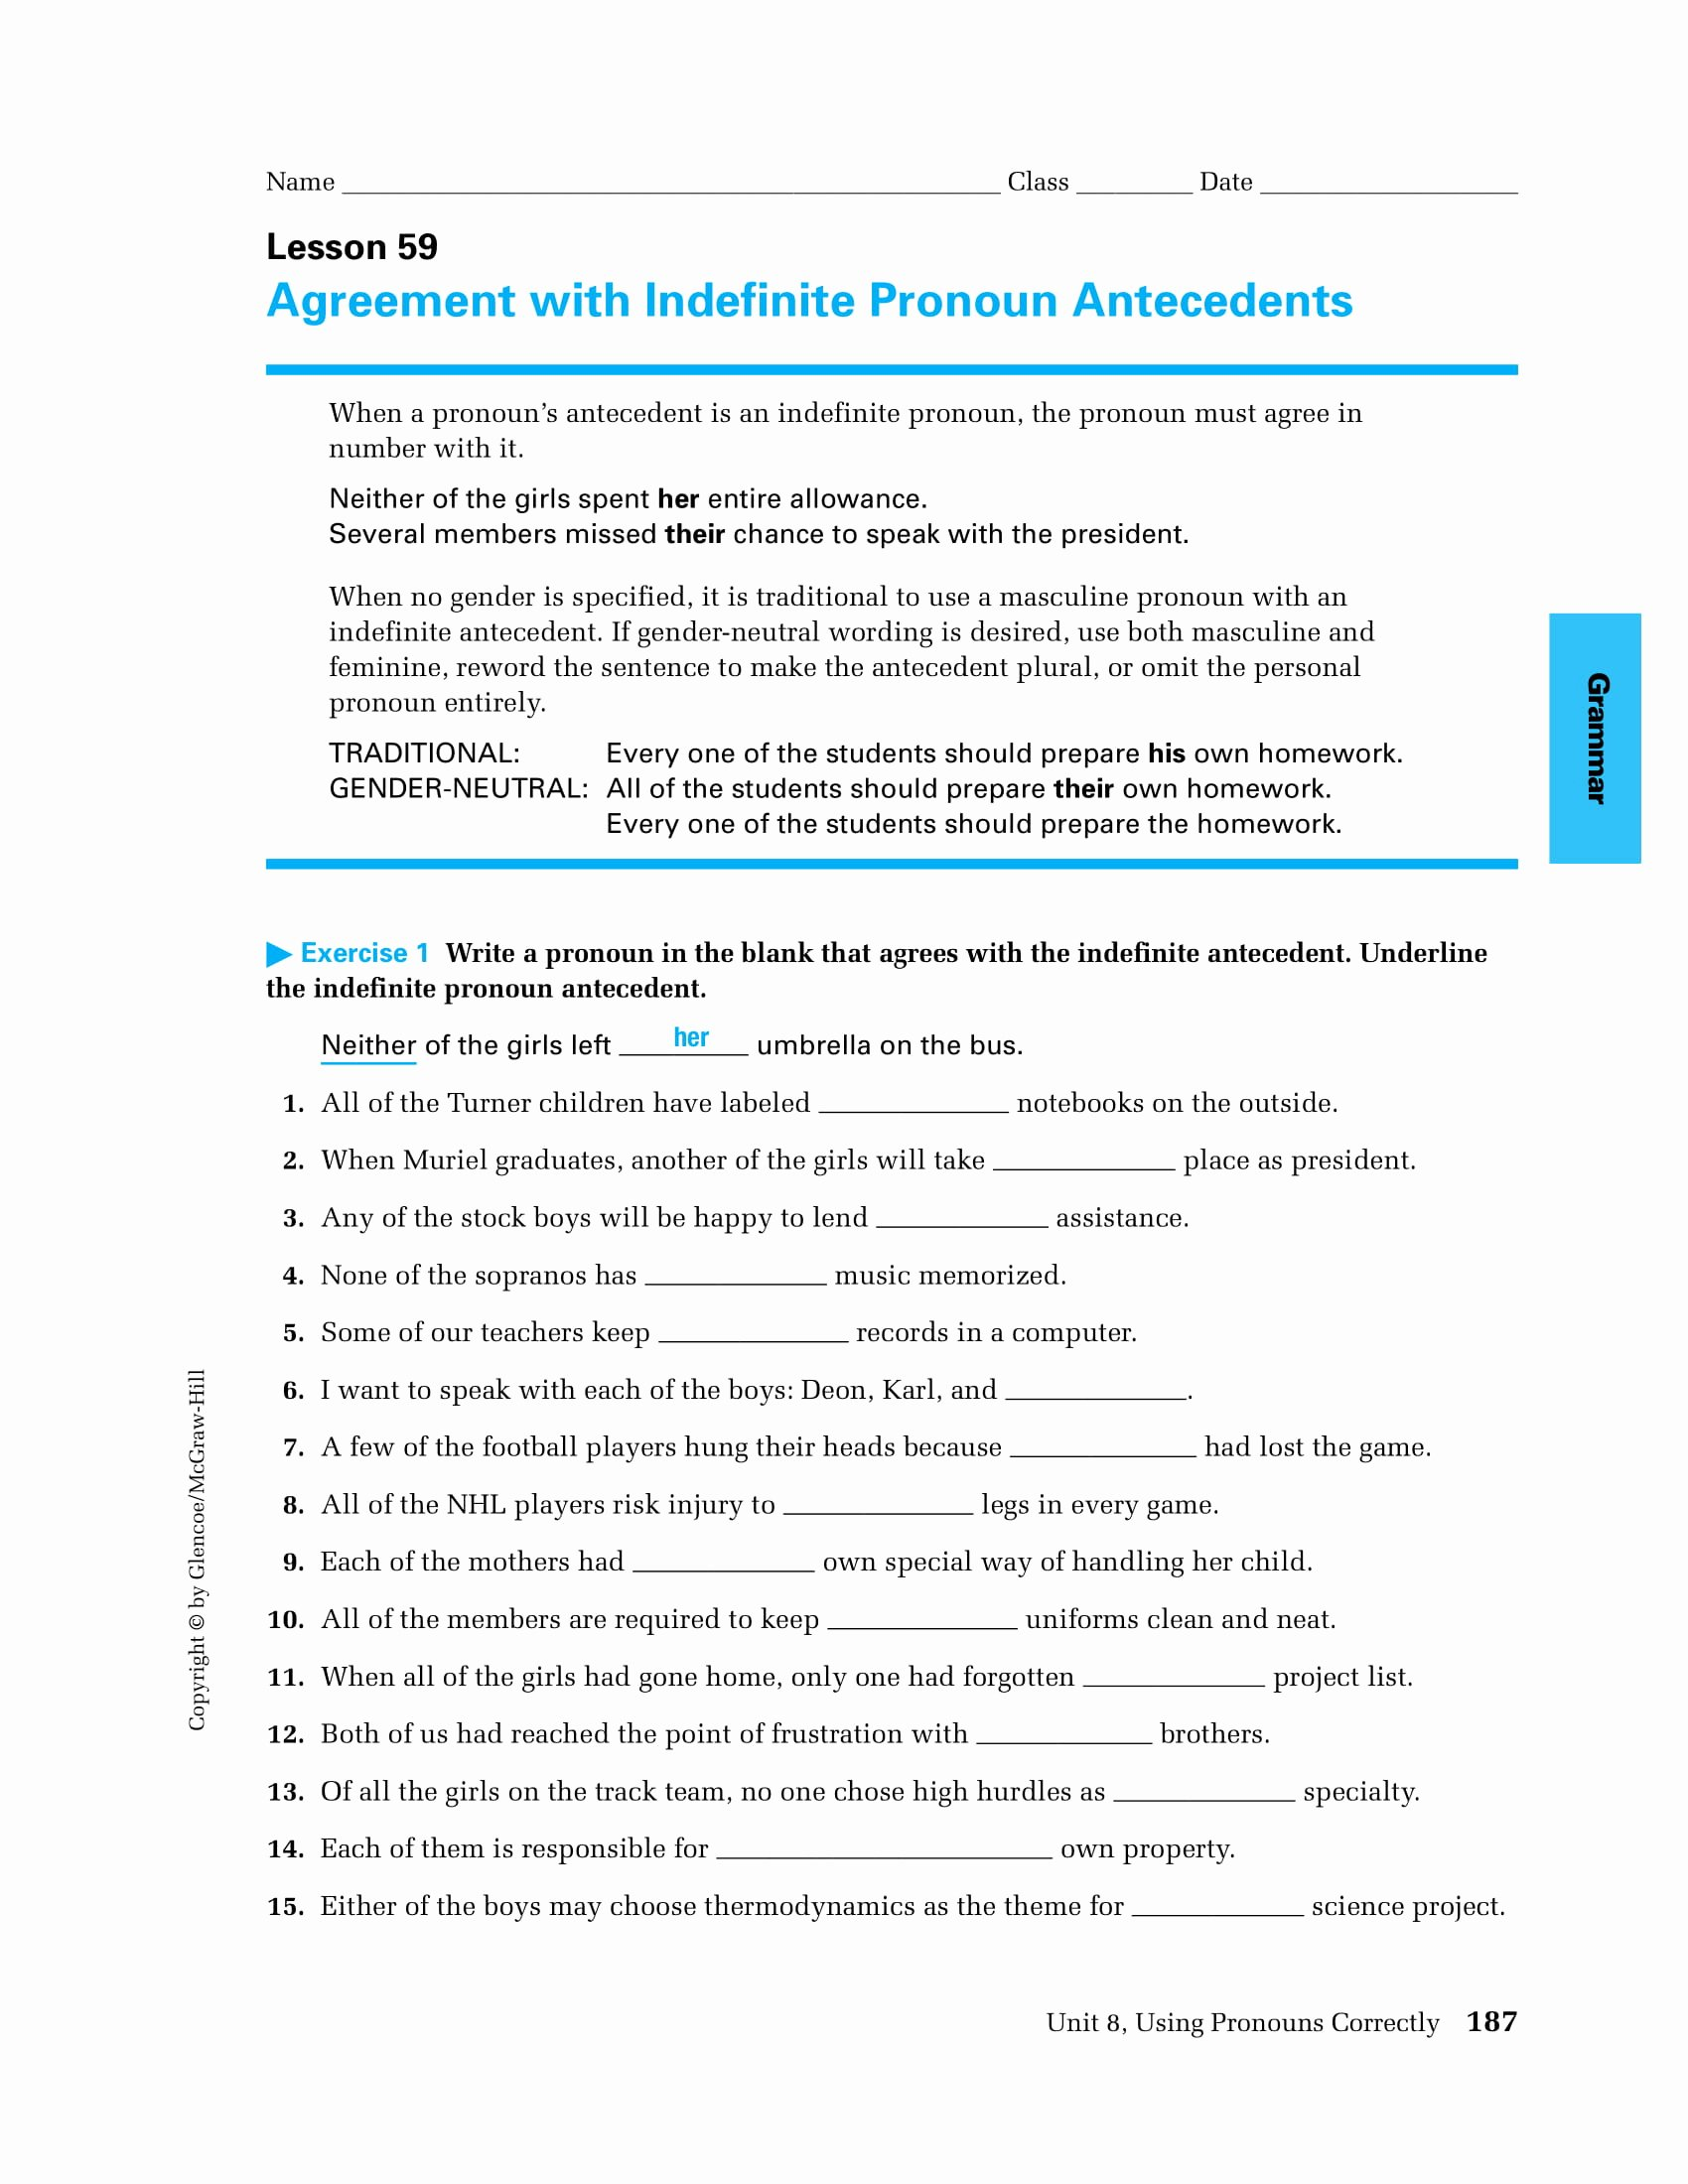 Pronoun Antecedent Agreement Worksheet Unique 9 Pronoun Antecedent Examples Pdf